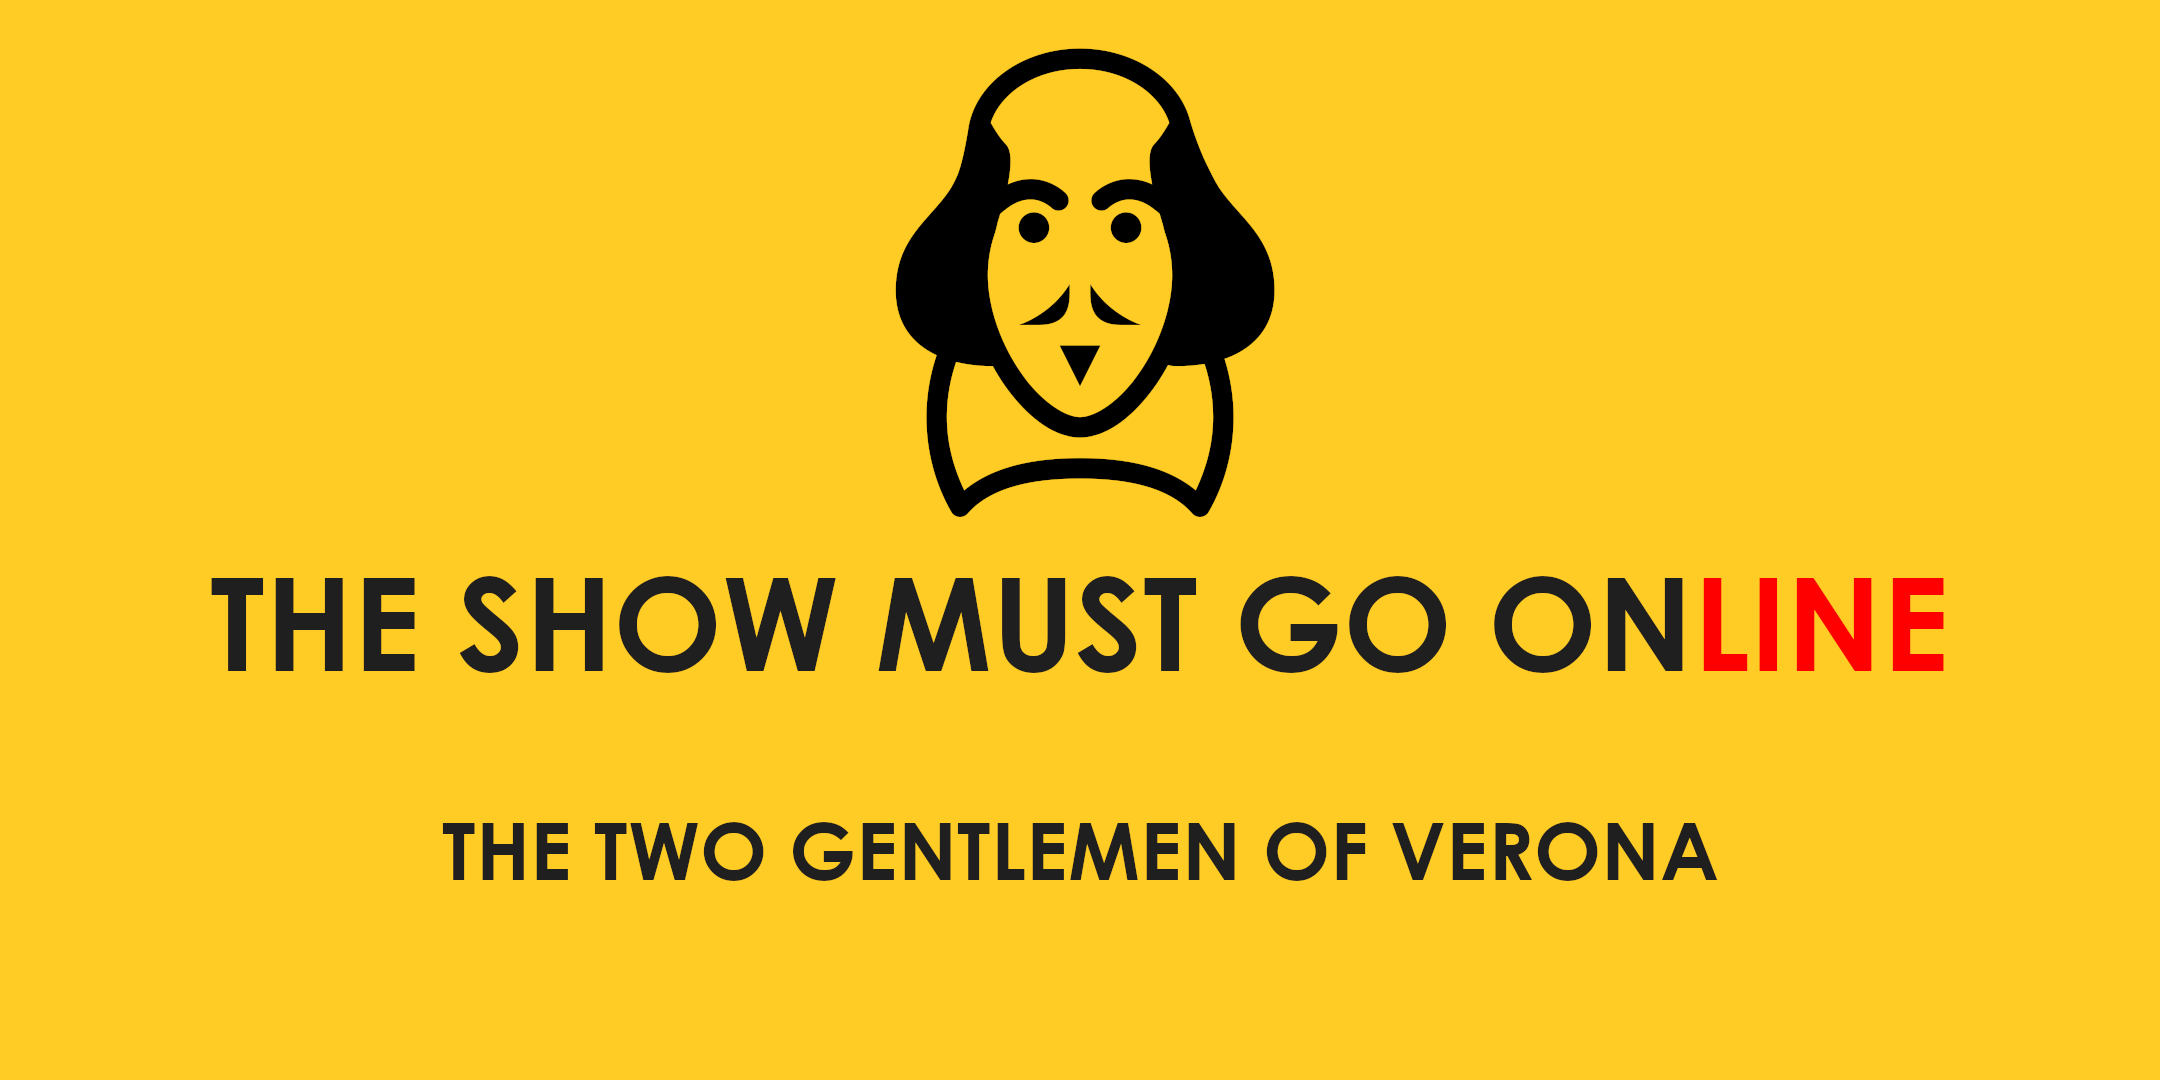 The Show Must Go Online, 2020, Shakespeare